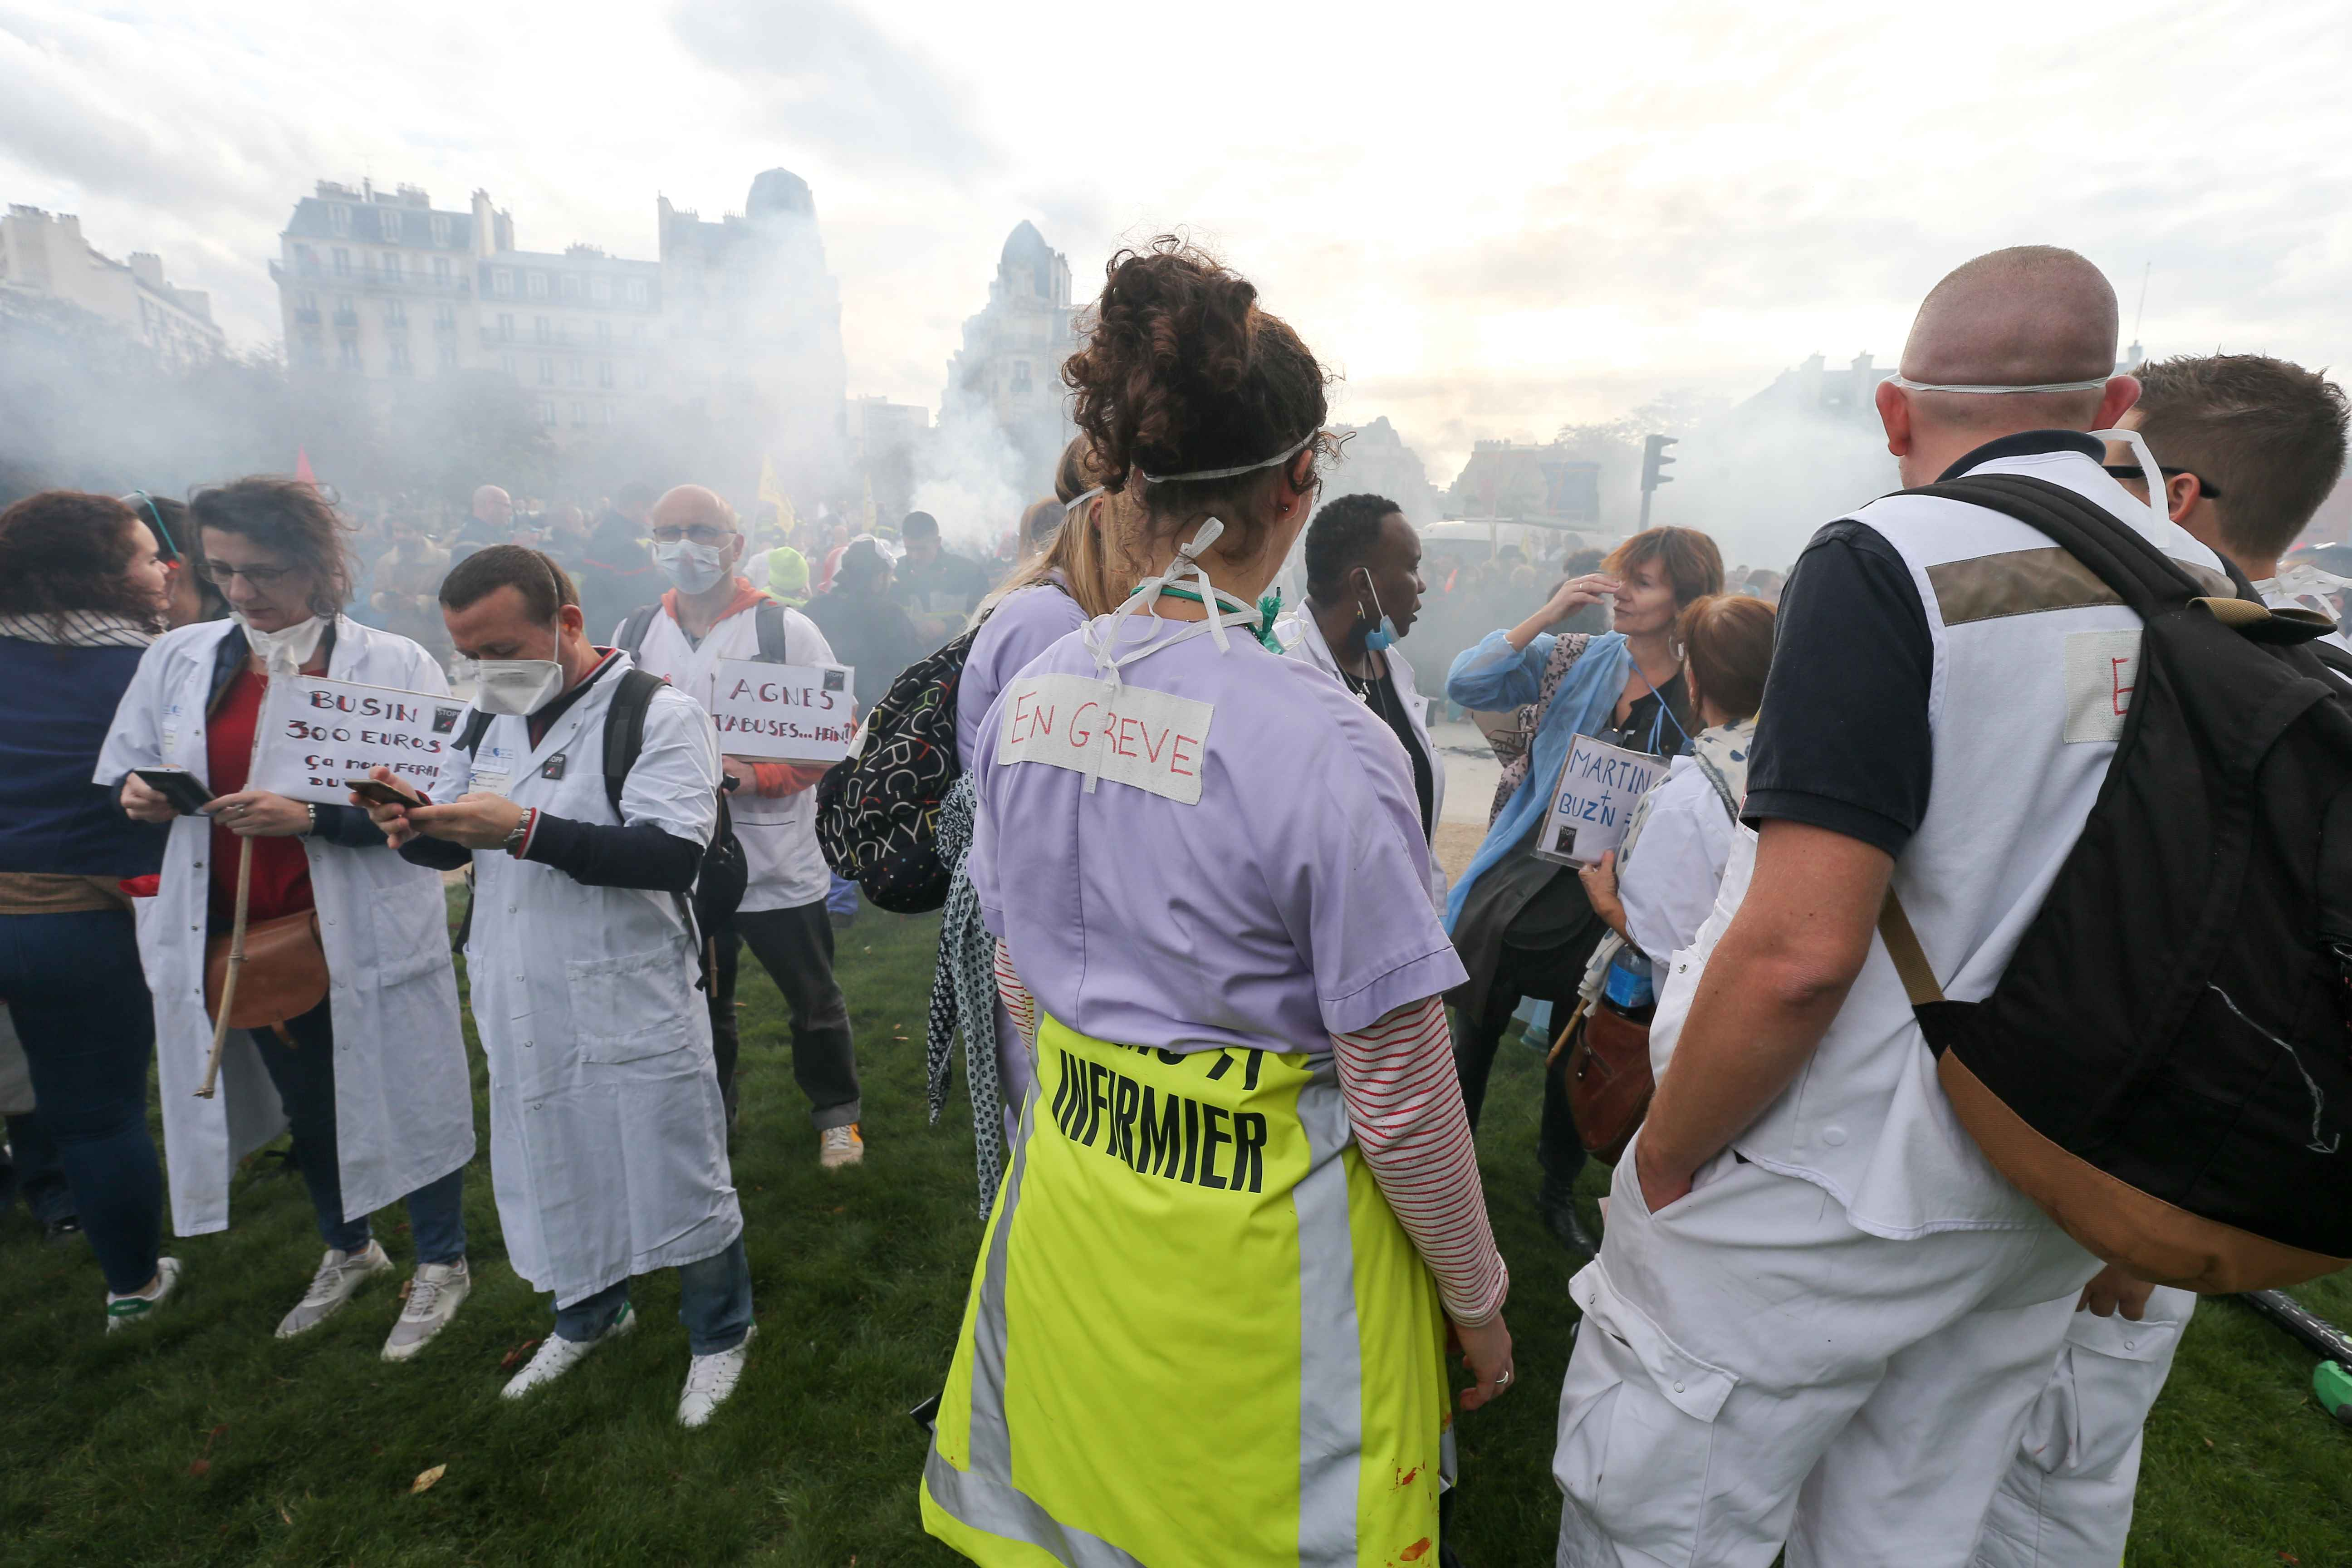 Hospital staff and firefighters protest as they march during the day of mobilization and national demonstration of the professional French firefighters in Paris, on October 15, 2019.